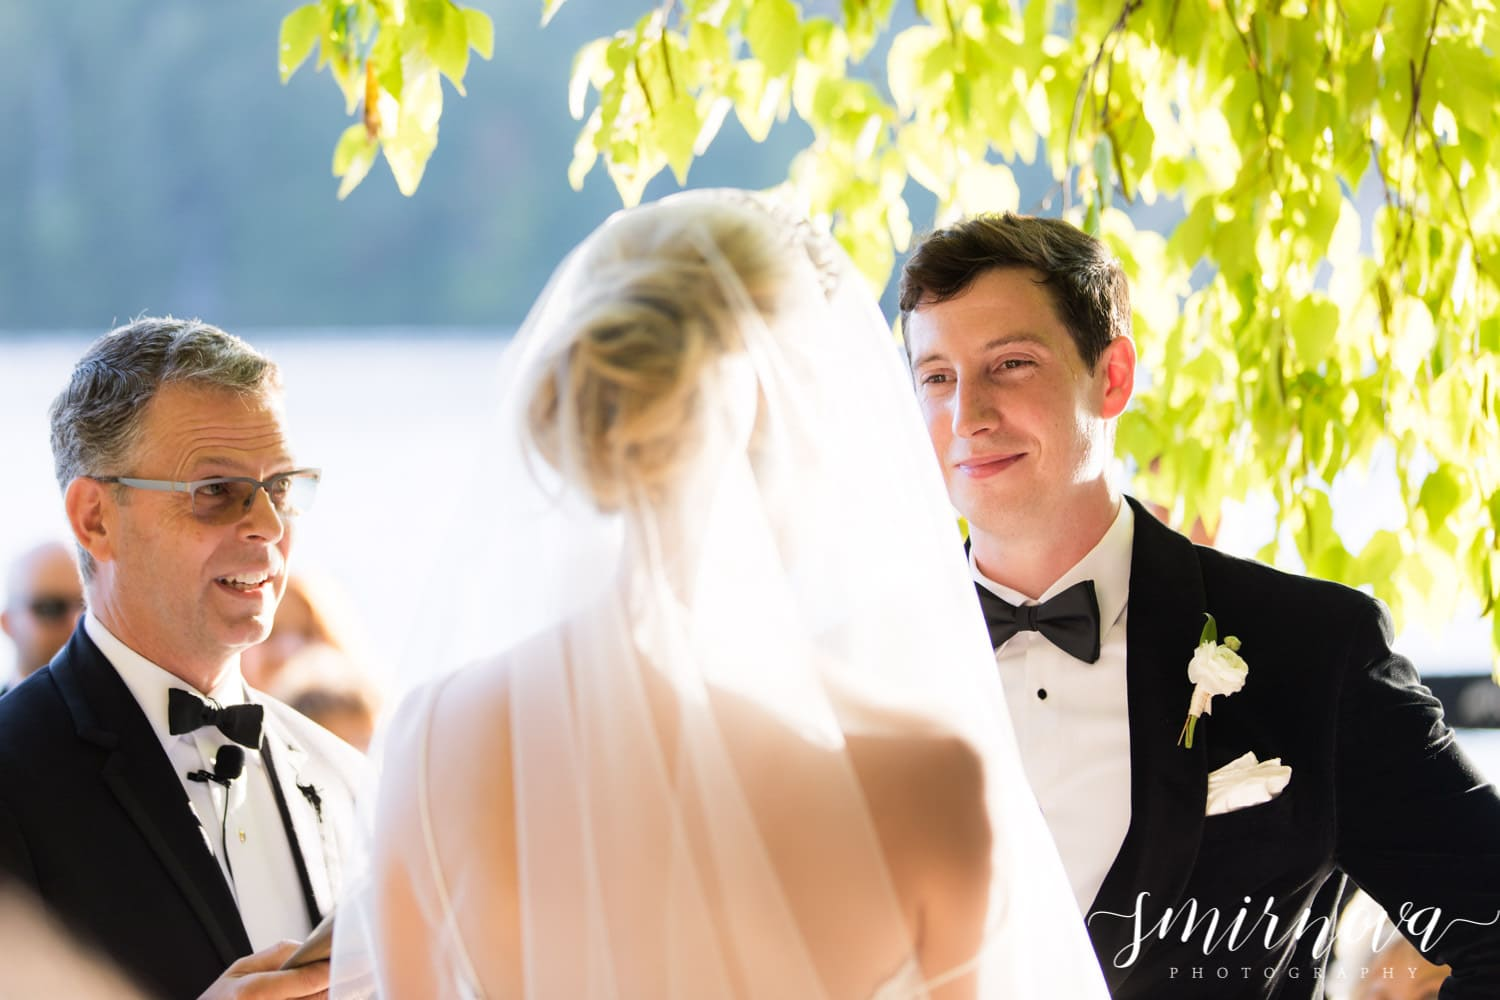 outdoor ceremony Smirnova Photography by Alyssa